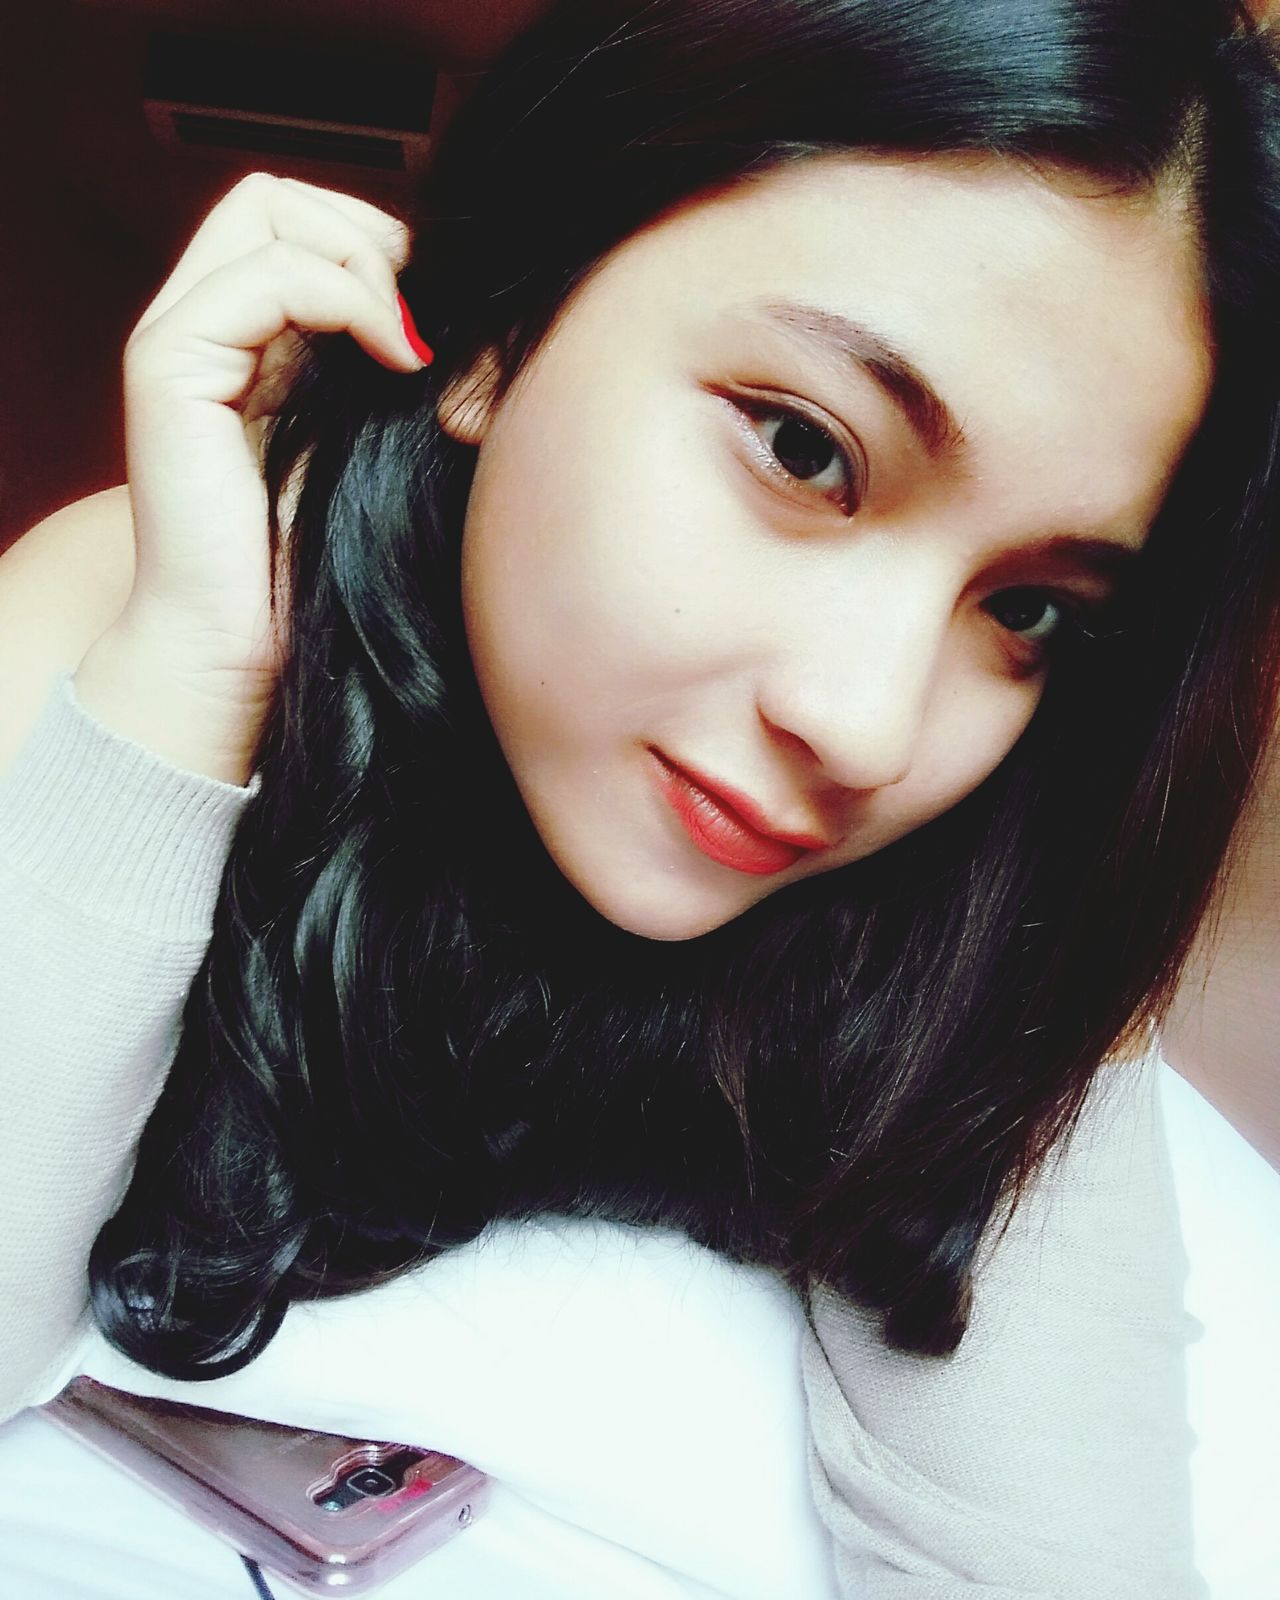 One Woman Only Beauty Beautiful Woman Indoors  Indonesia_photography Jawatengah Only Women Adults Only Portrait One Person Adult One Young Woman Only Young Adult Looking At Camera People Young Women Women Warm Clothing Headshot Smiling Close-up Human Body Part